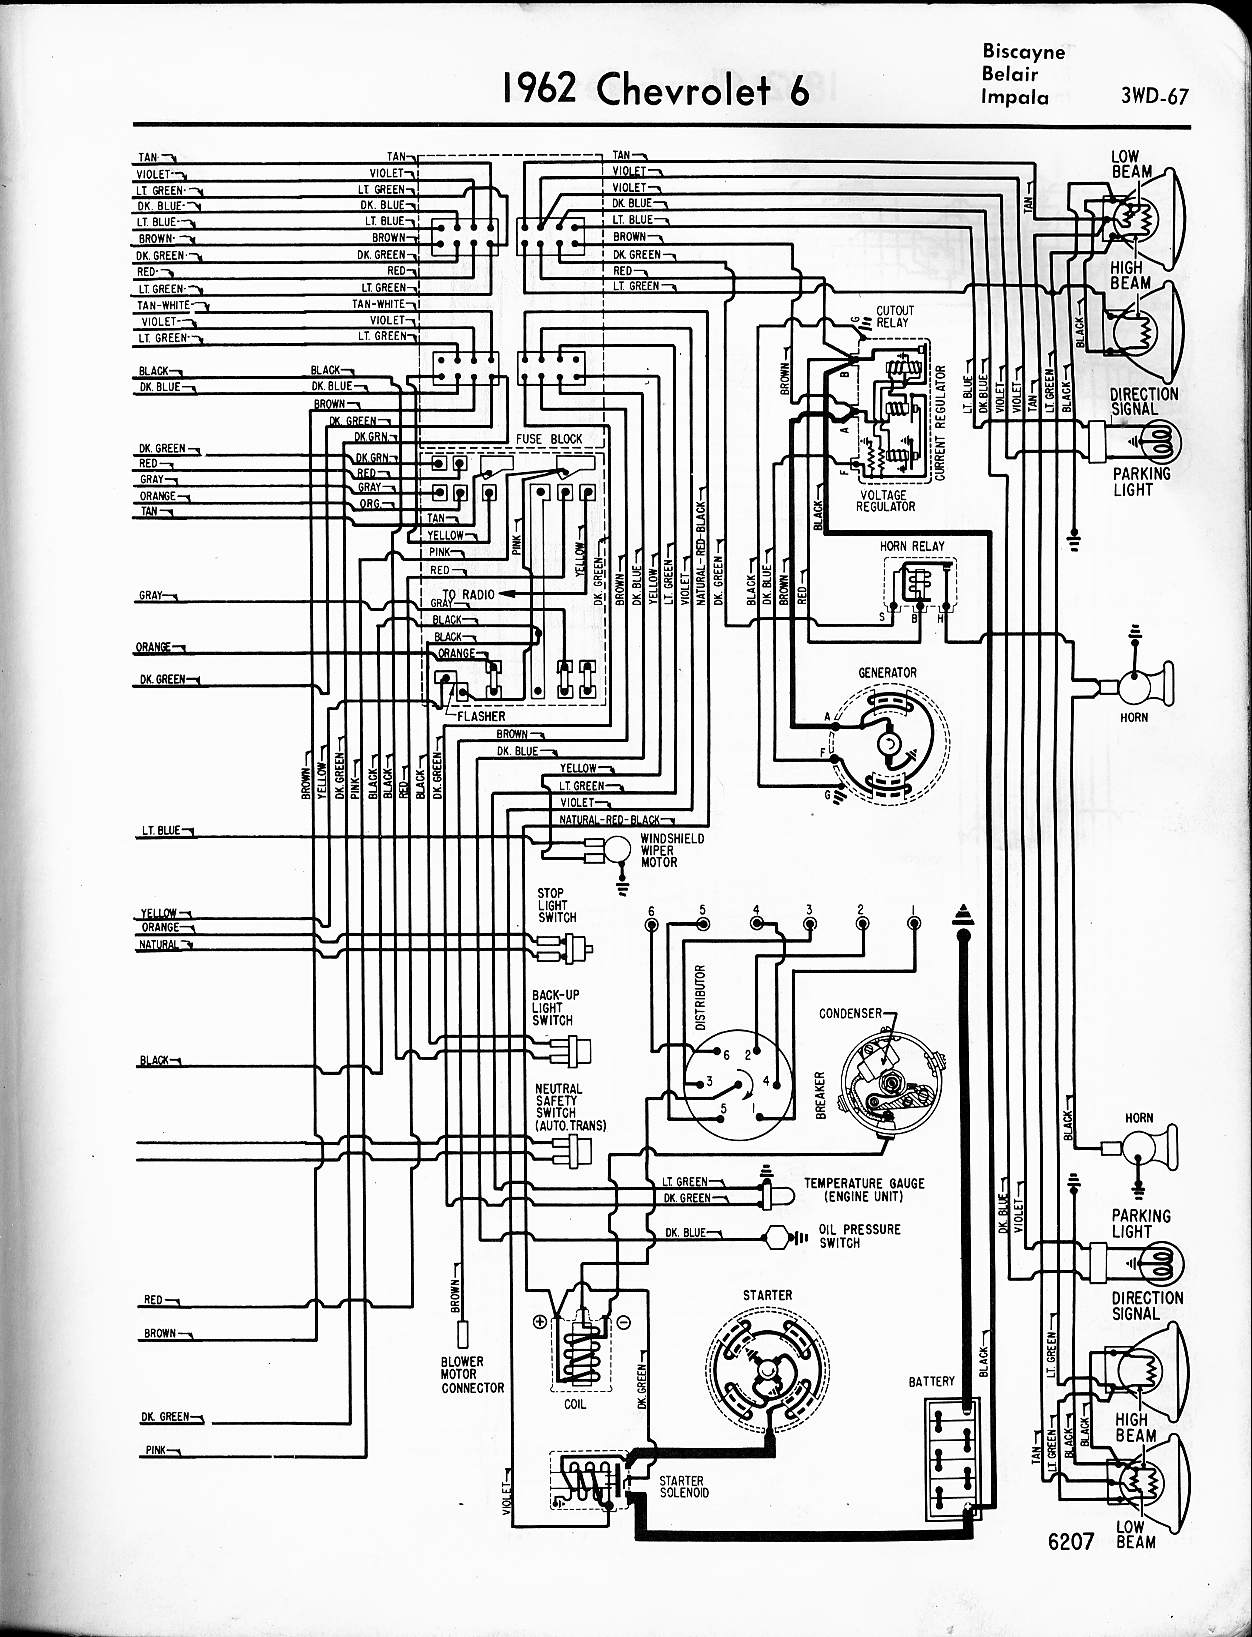 1962 C10 Wiring Diagram Library Half Switched Schematic Biscayne Belair Impala Left 57 65 Chevy Diagrams